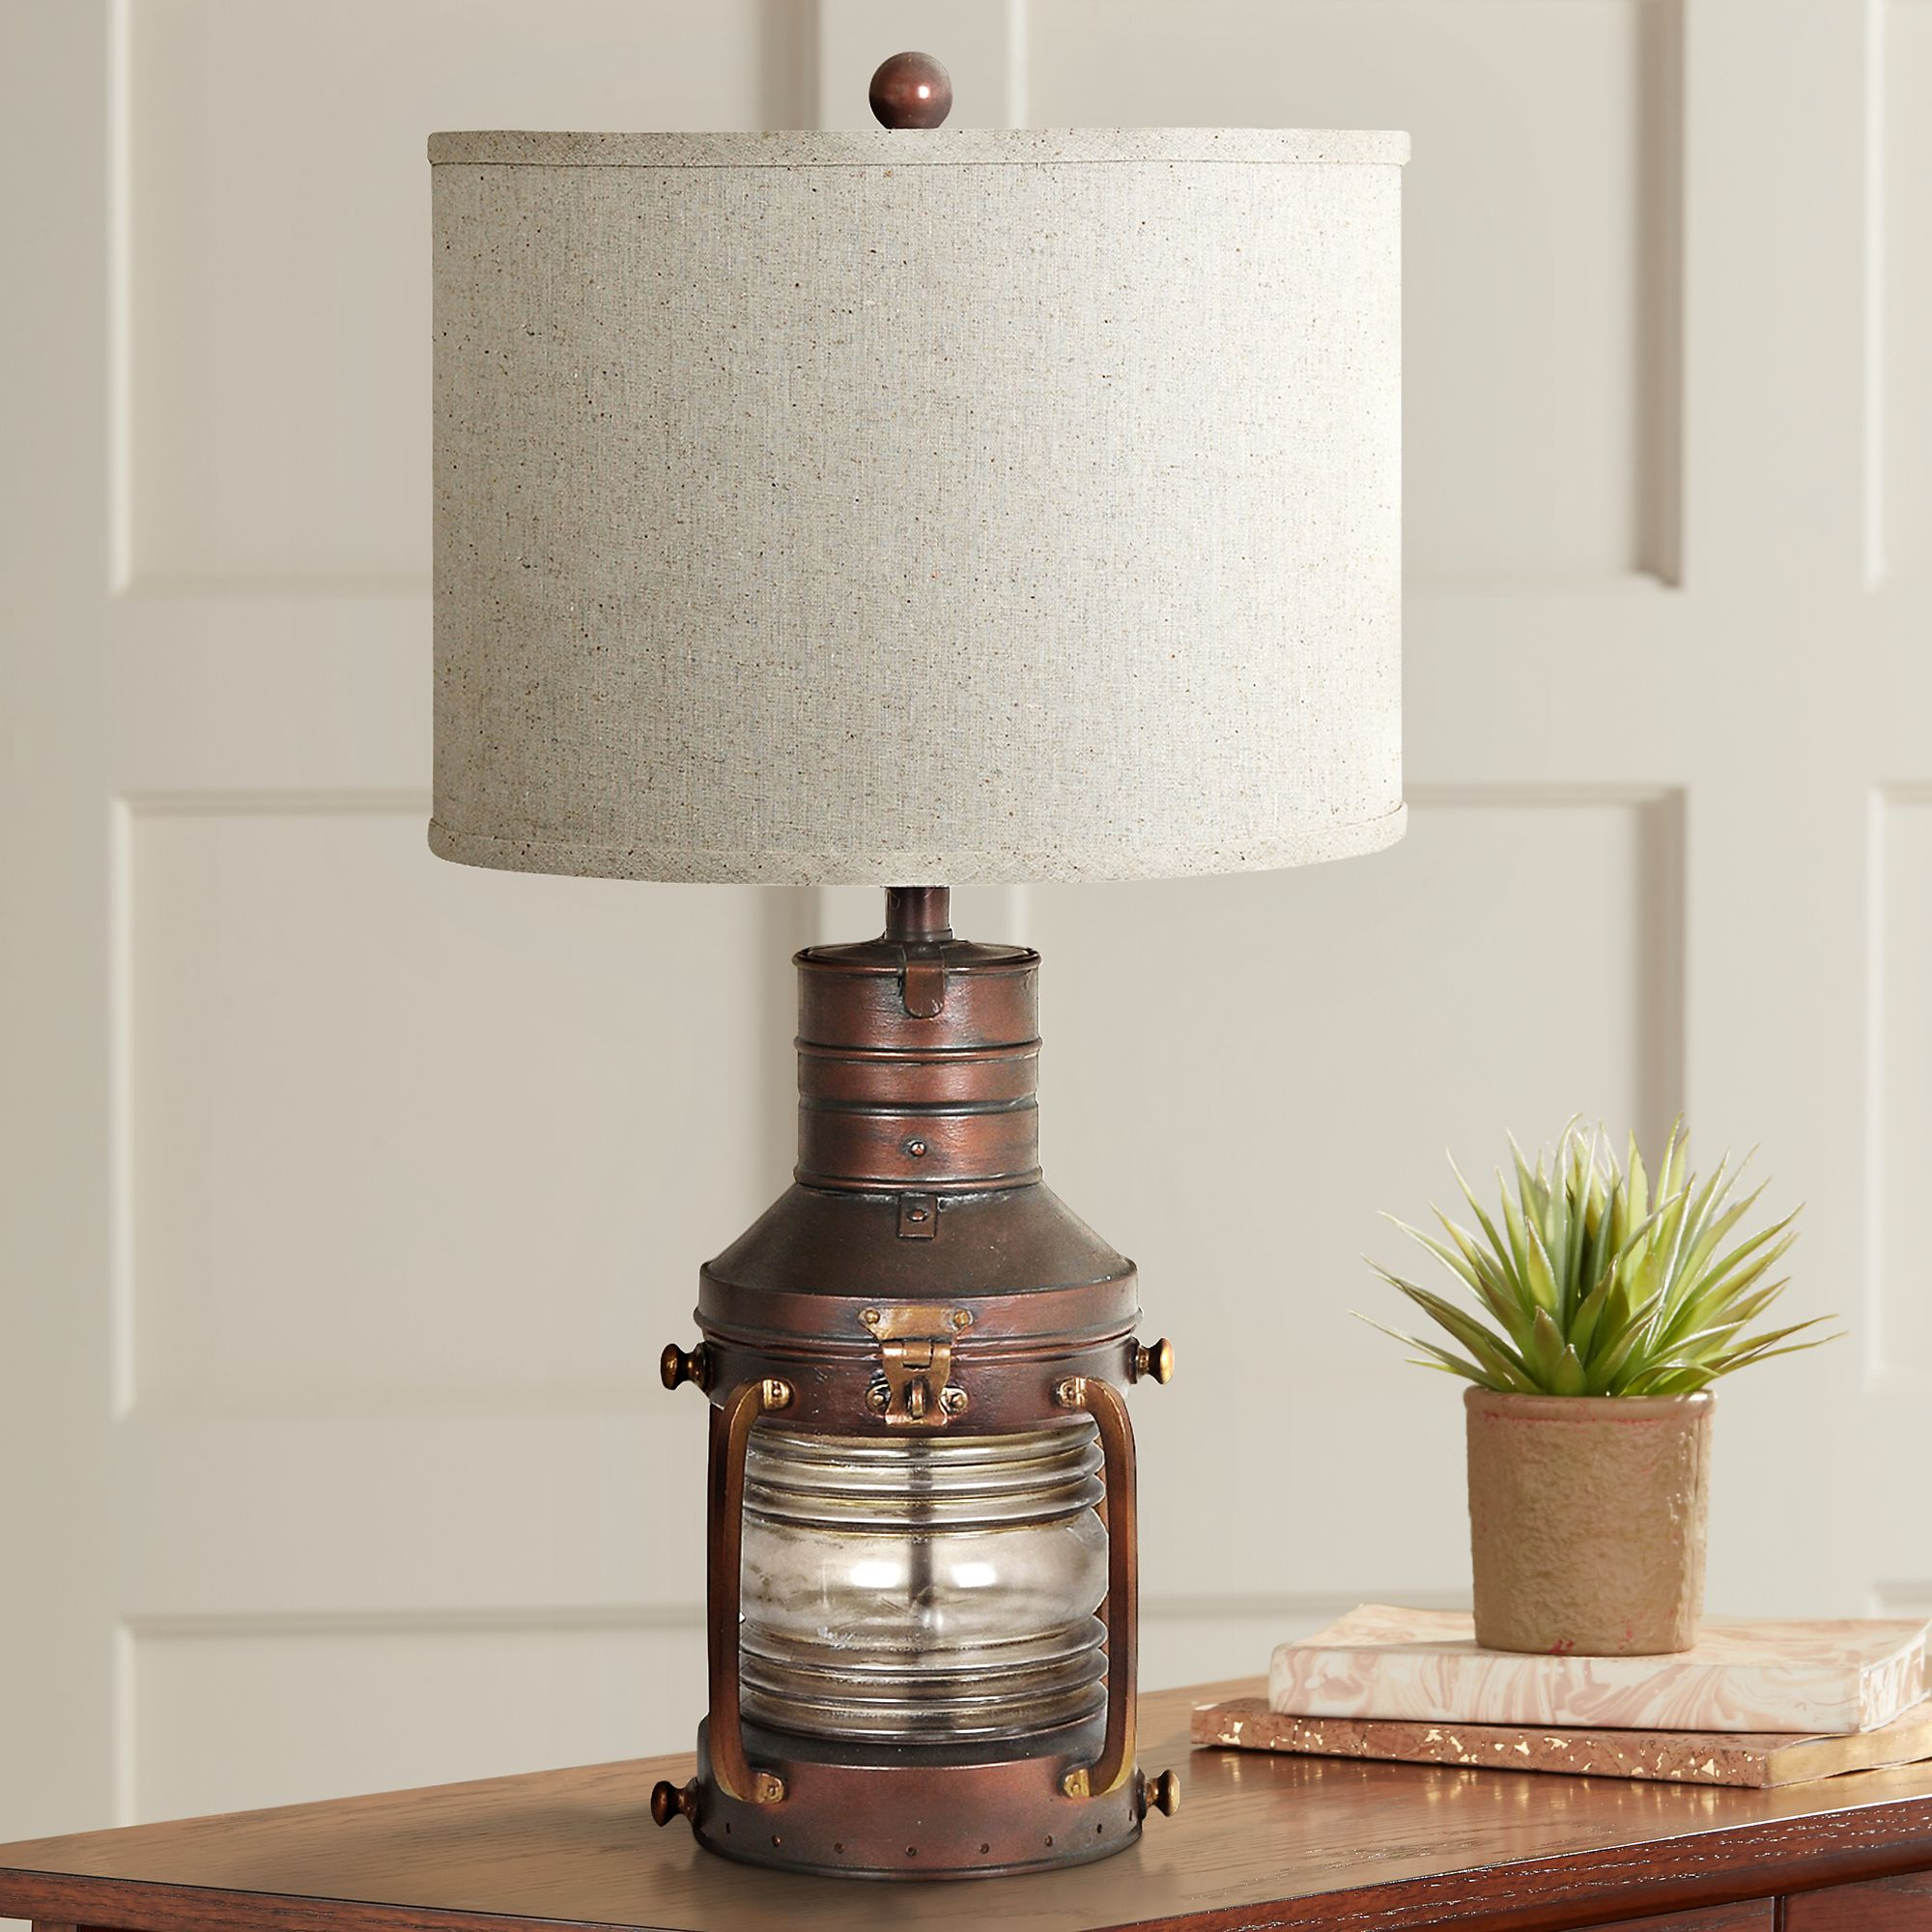 Great Crestview Rubbed Copper Lantern Table Lamp And Nightlight